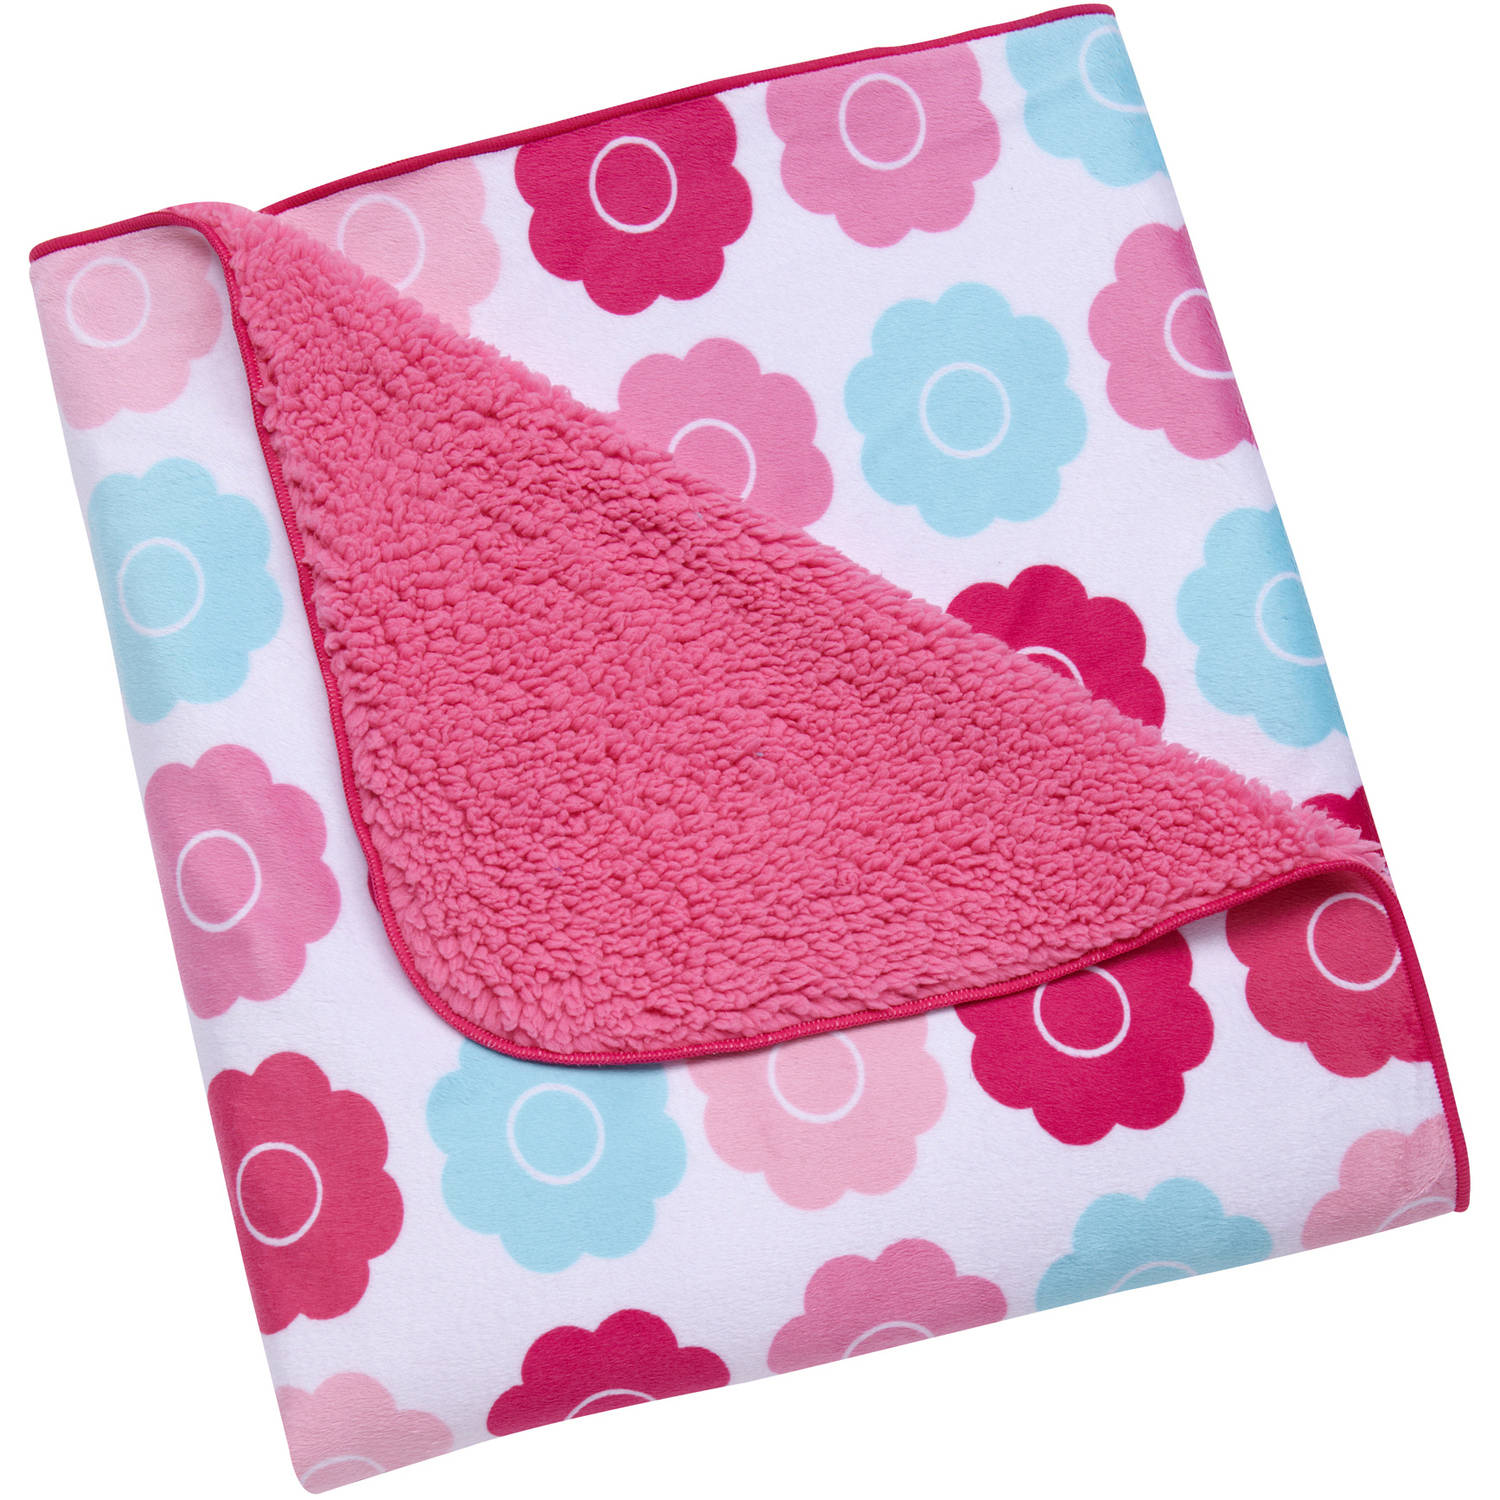 Tickled Pink Baby Blanket, Available in Multiple Materials